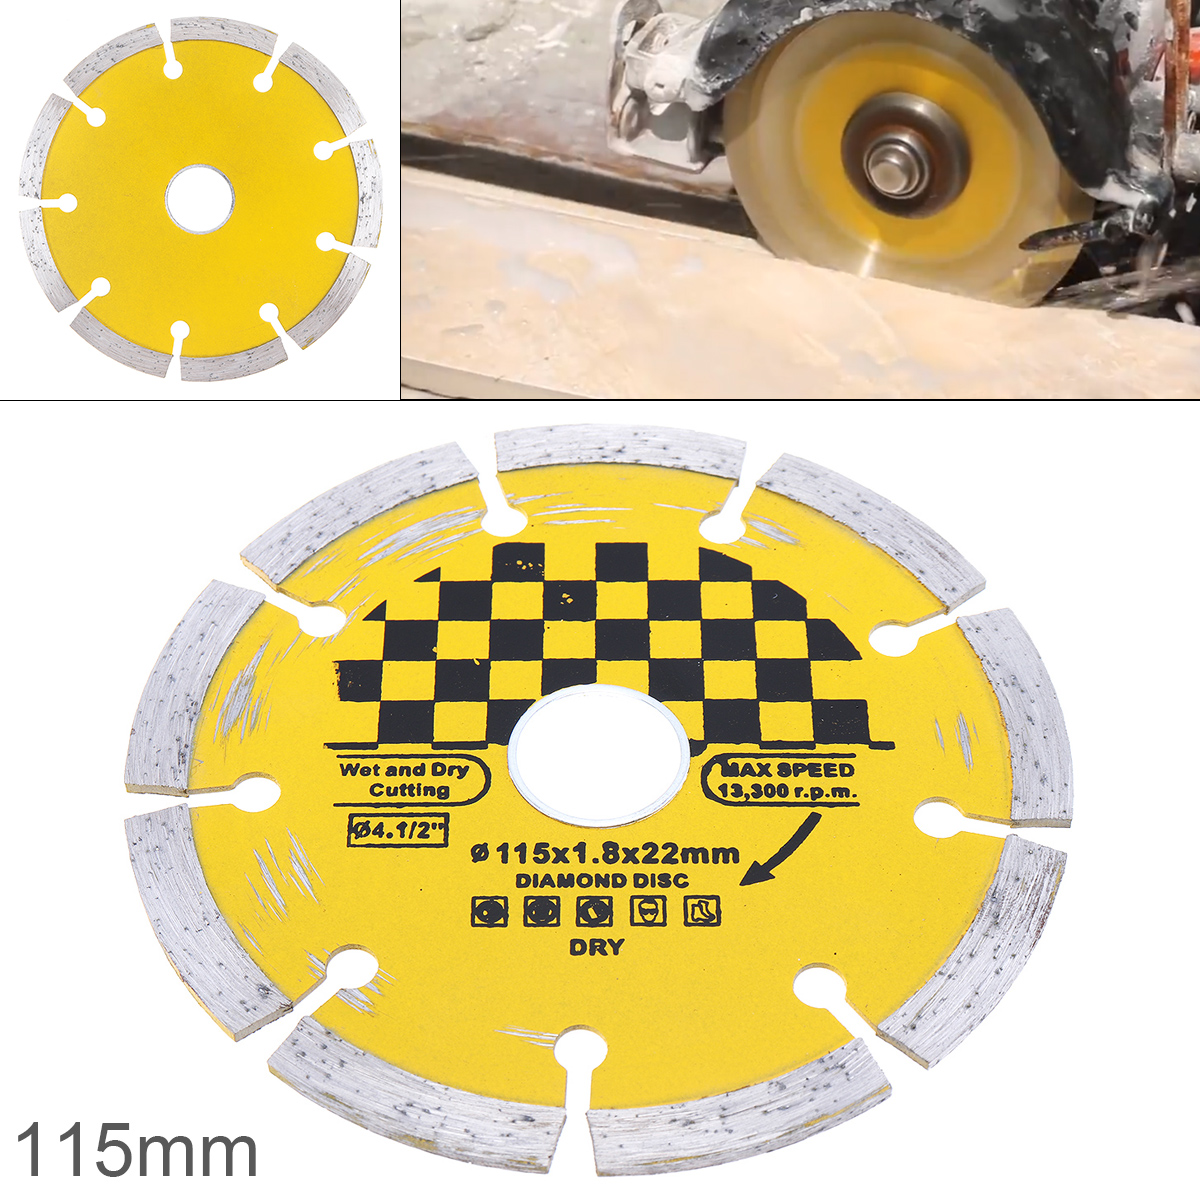 1pcs 115mm Dry Slotted And Broken Walls Circular Saw Blade Marble Stone Cutting Blade Coagulated Stone Dry Cutting Disc